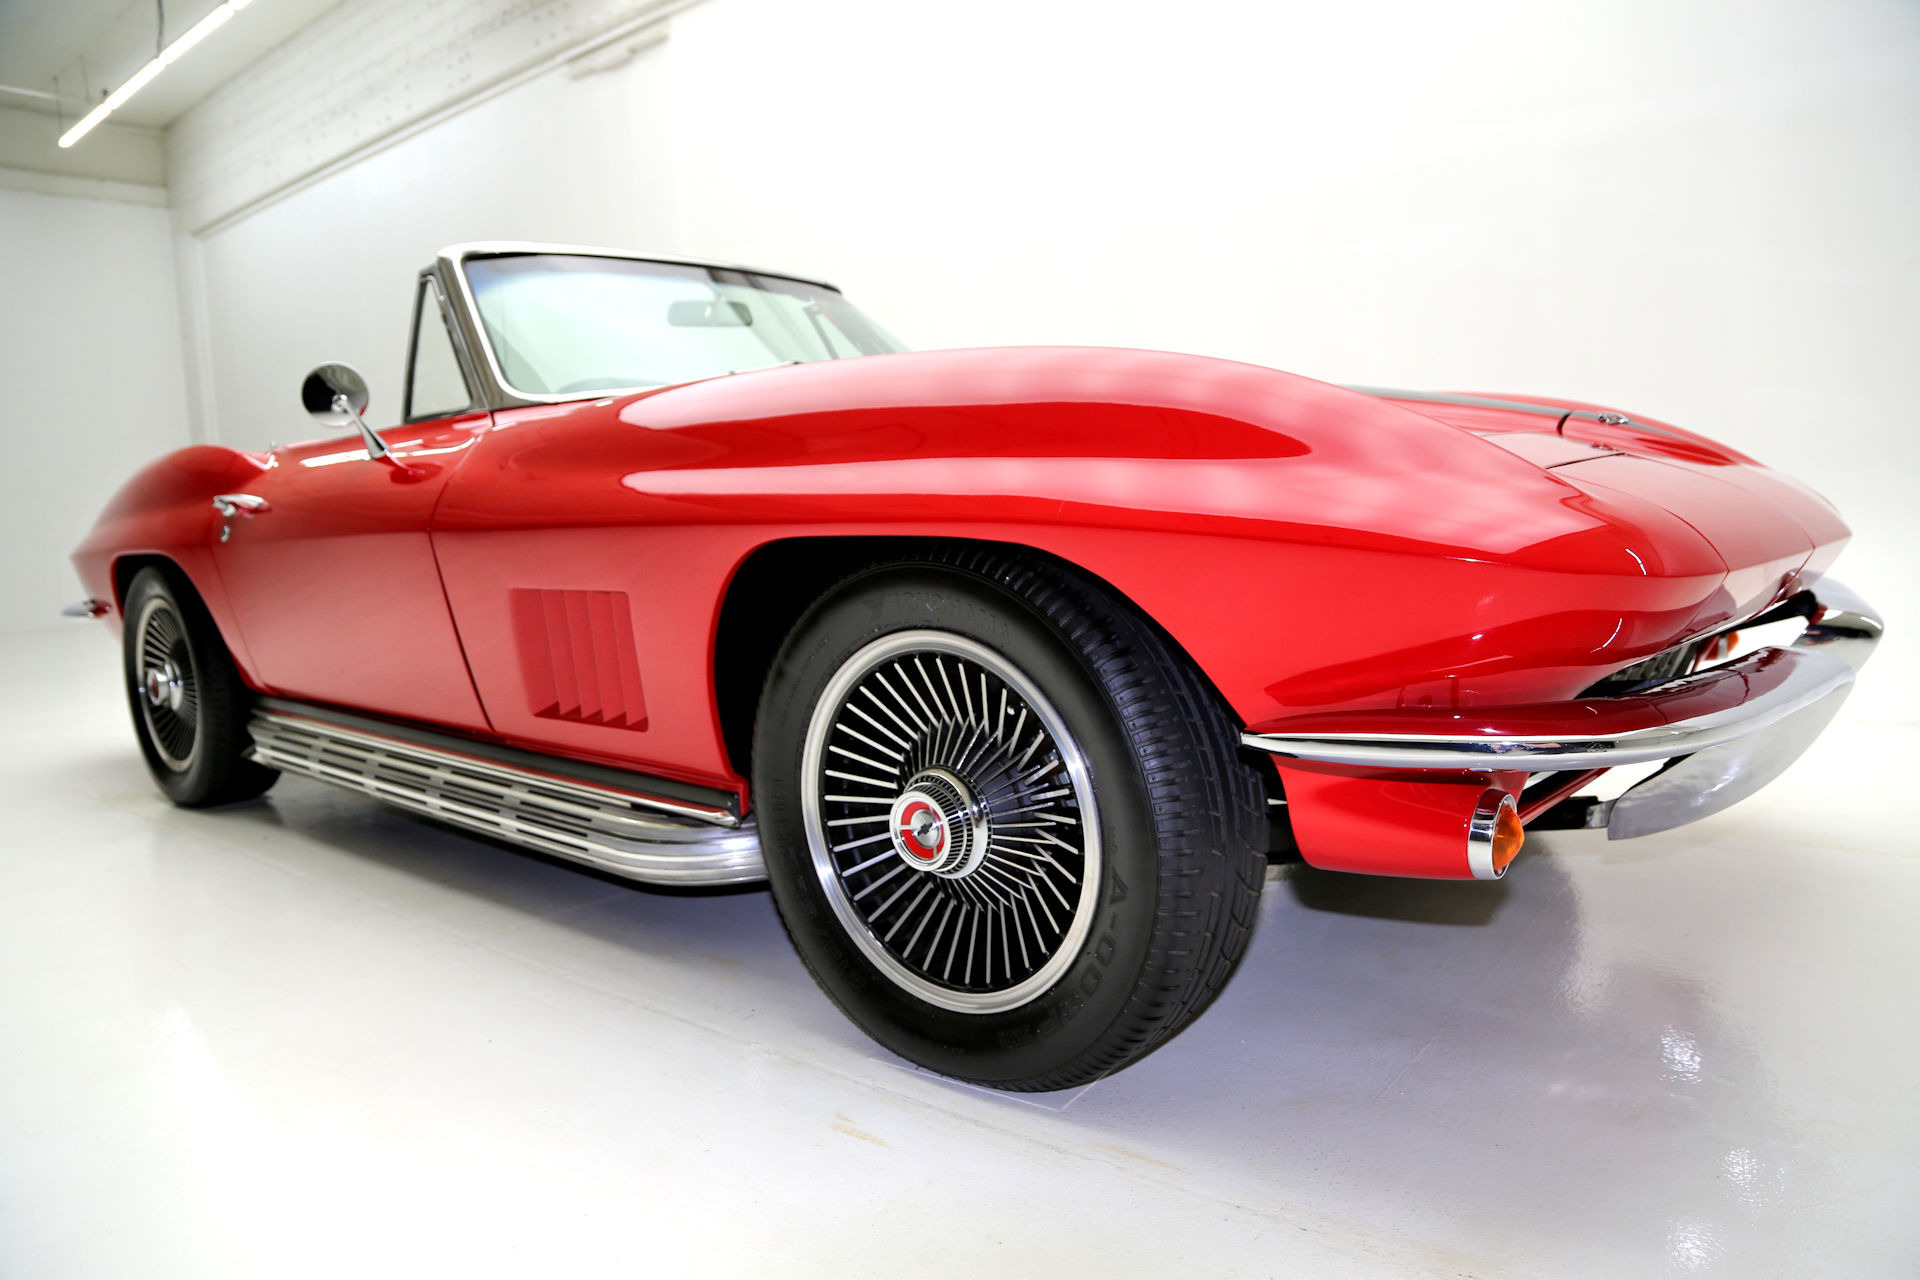 For Sale Used 1967 Chevrolet Corvette 427/435hp Tribute | American Dream Machines Des Moines IA 50309